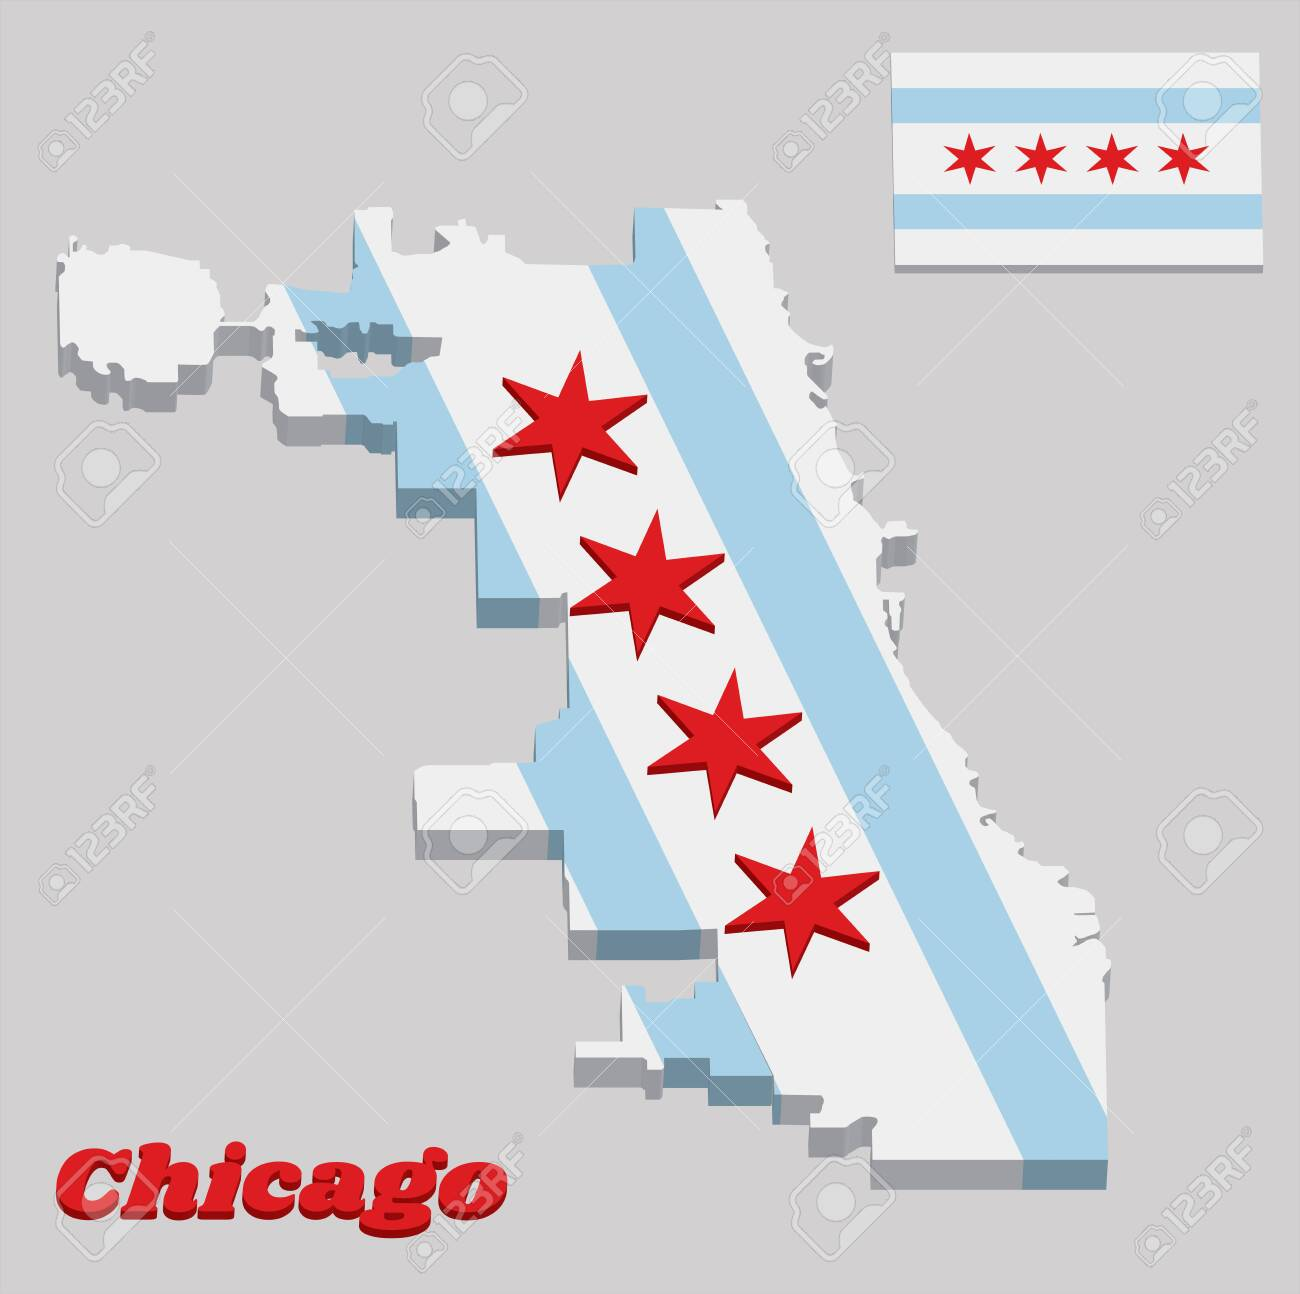 3D Map Outline And Flag Of Chicago, The City Of Chicago Is The ... Chicago Outline Map on